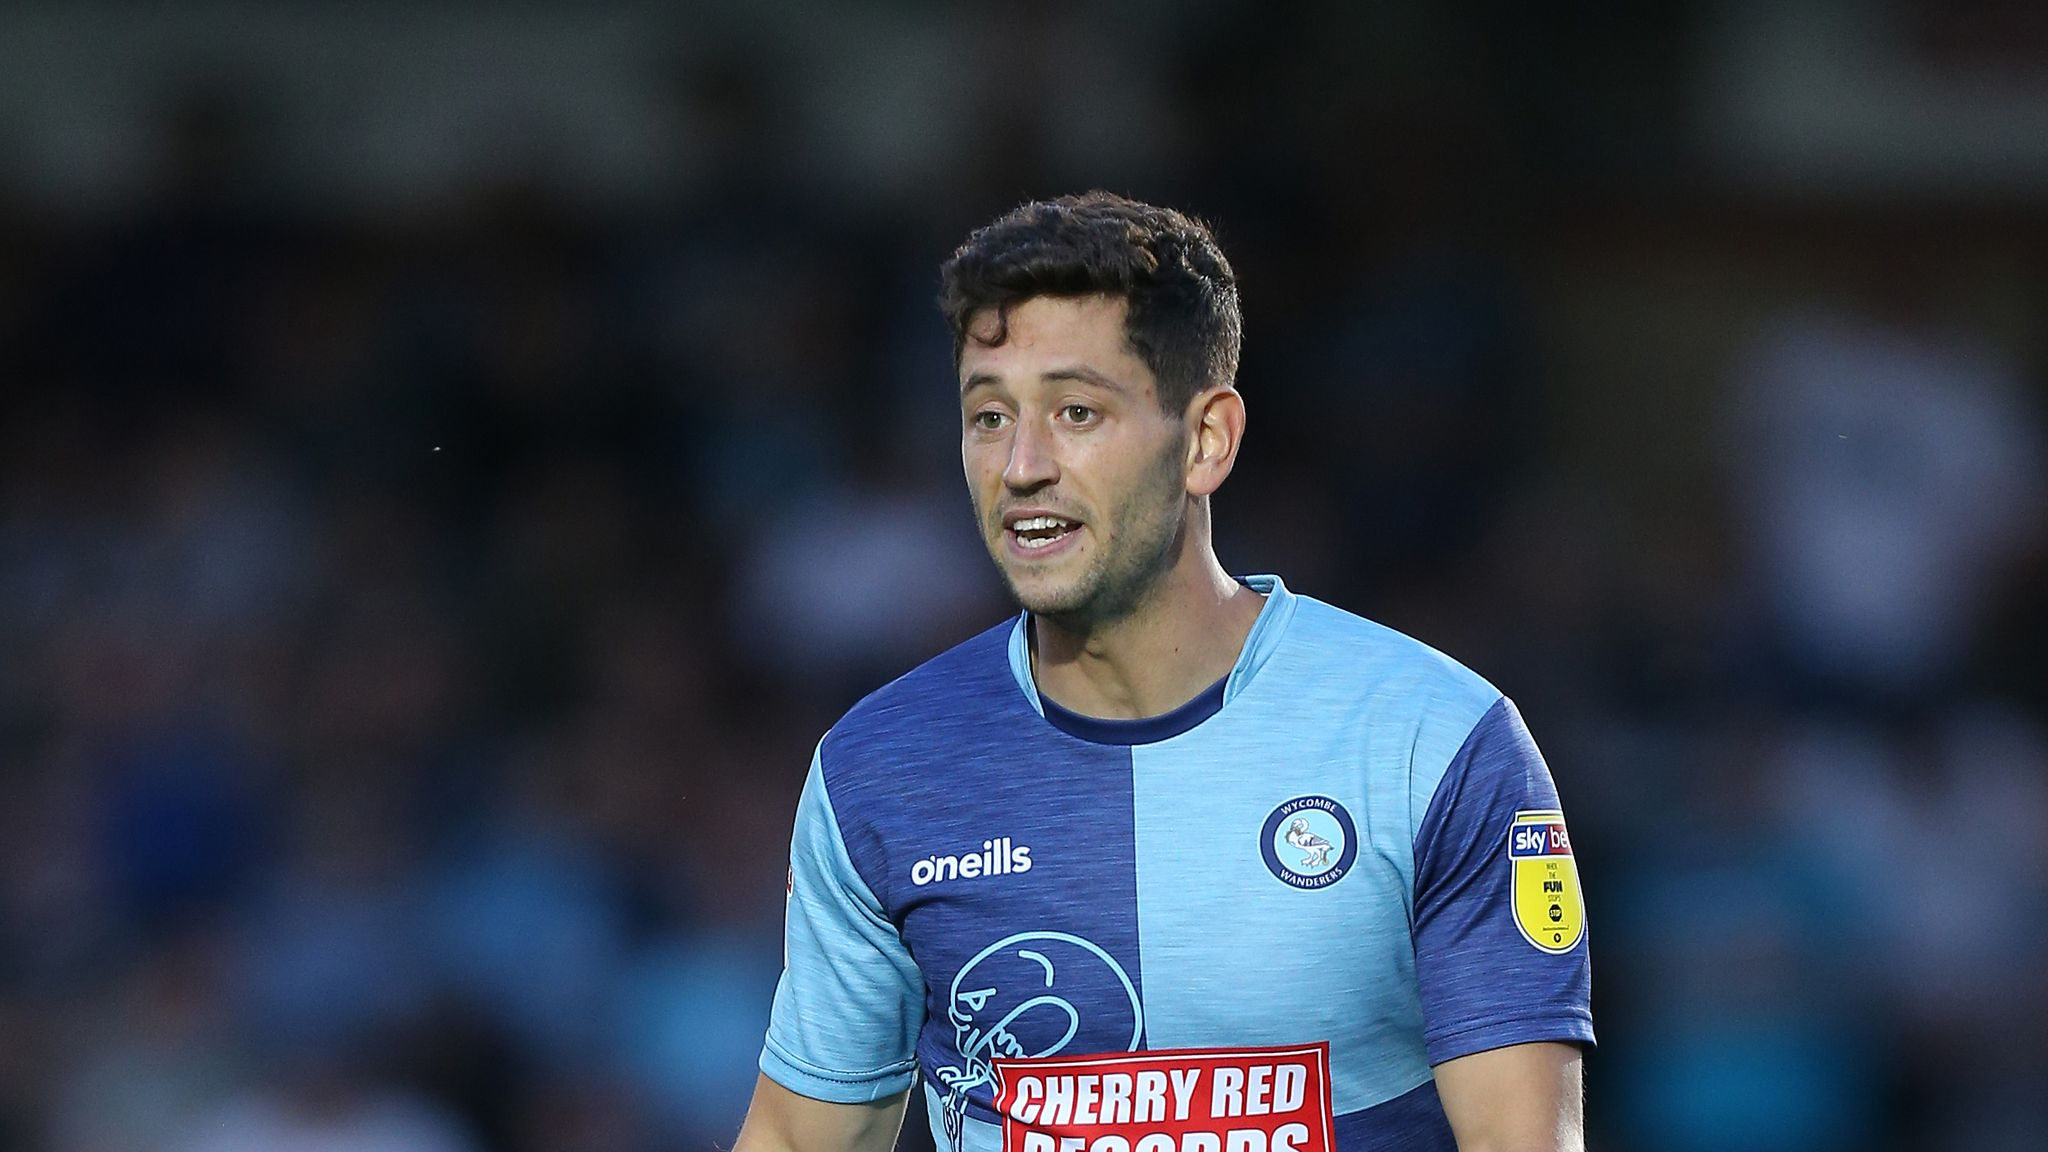 League One highlights and round-up: Wycombe win, Ipswich held